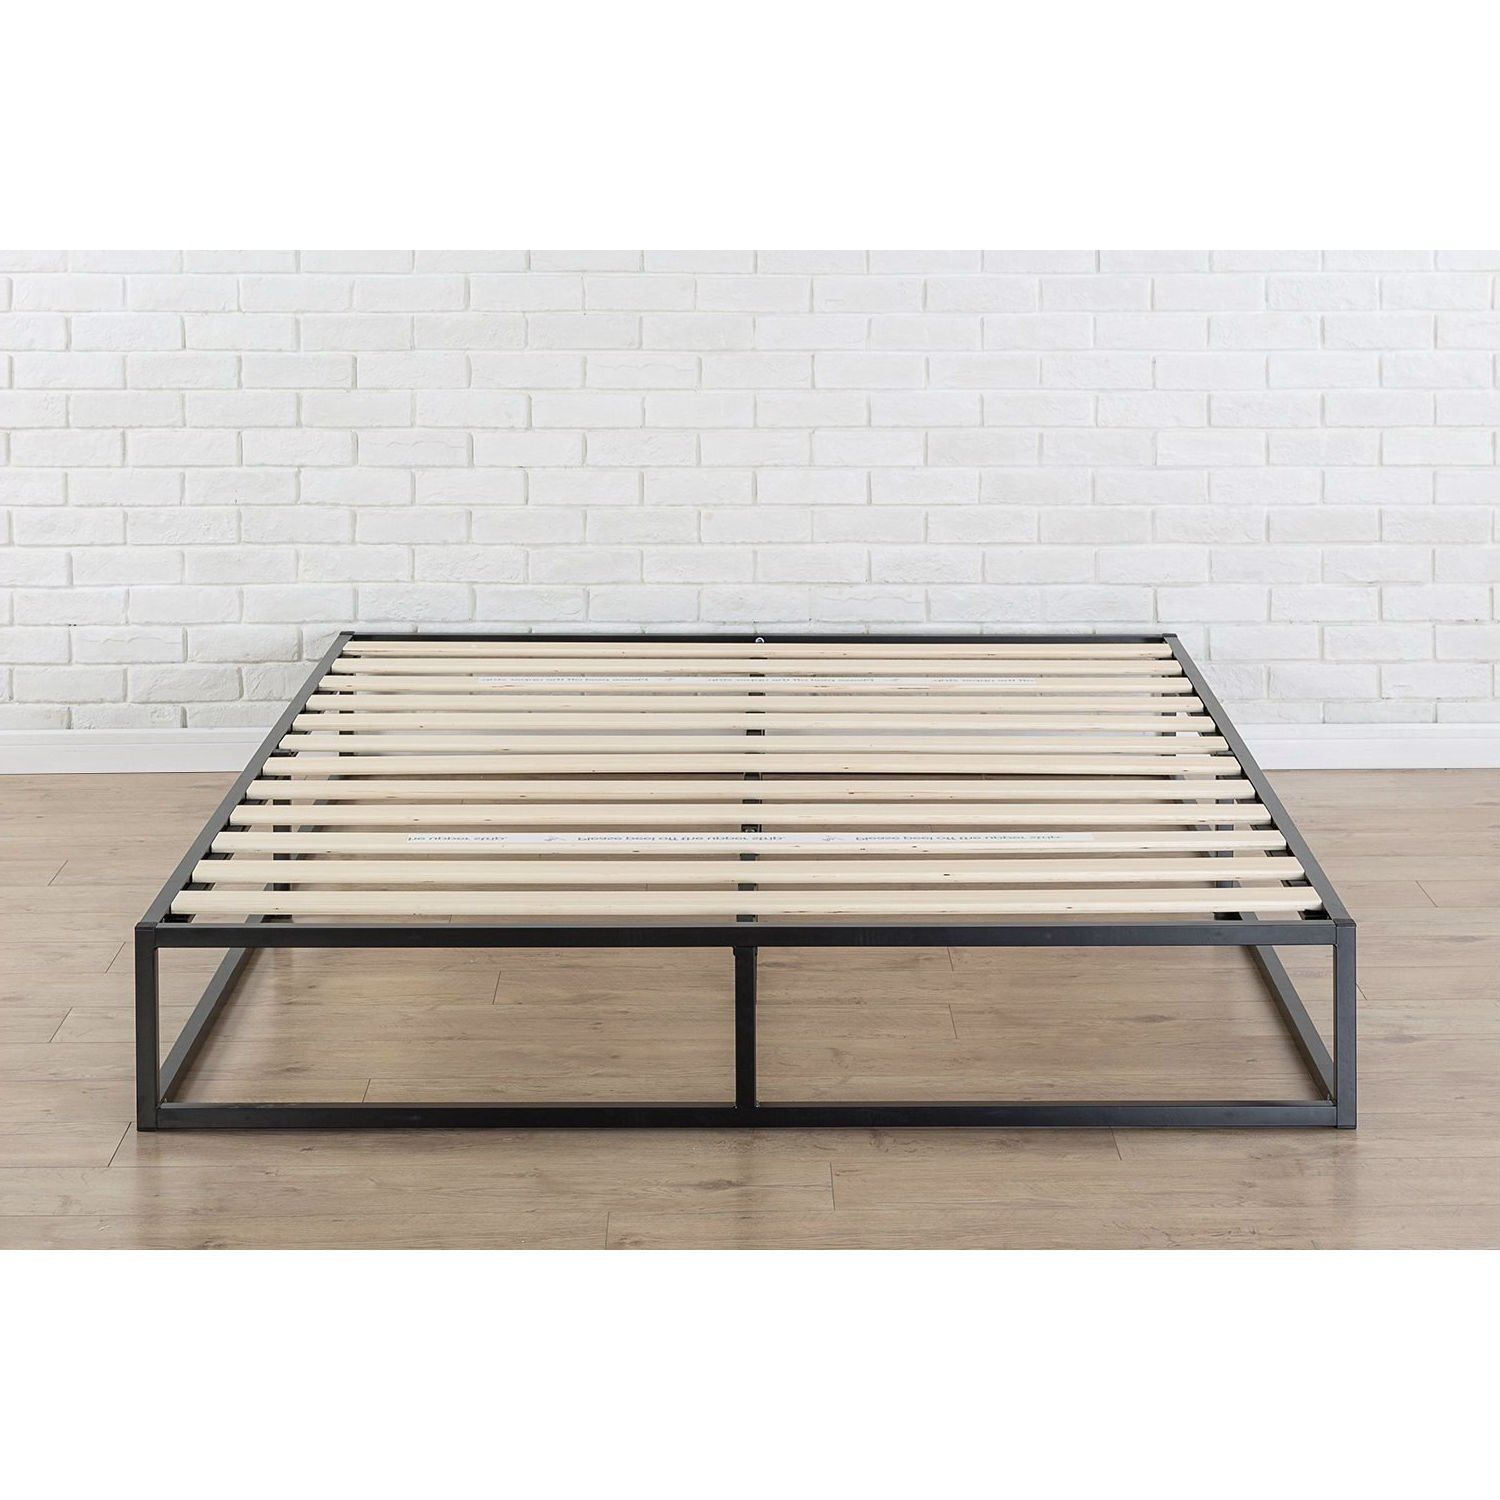 King Size Modern 10 Inch Low Profile Metal Platform Bed Frame With Wood Slats Metal Platform Bed Low Platform Bed Frame Platform Bed Frame